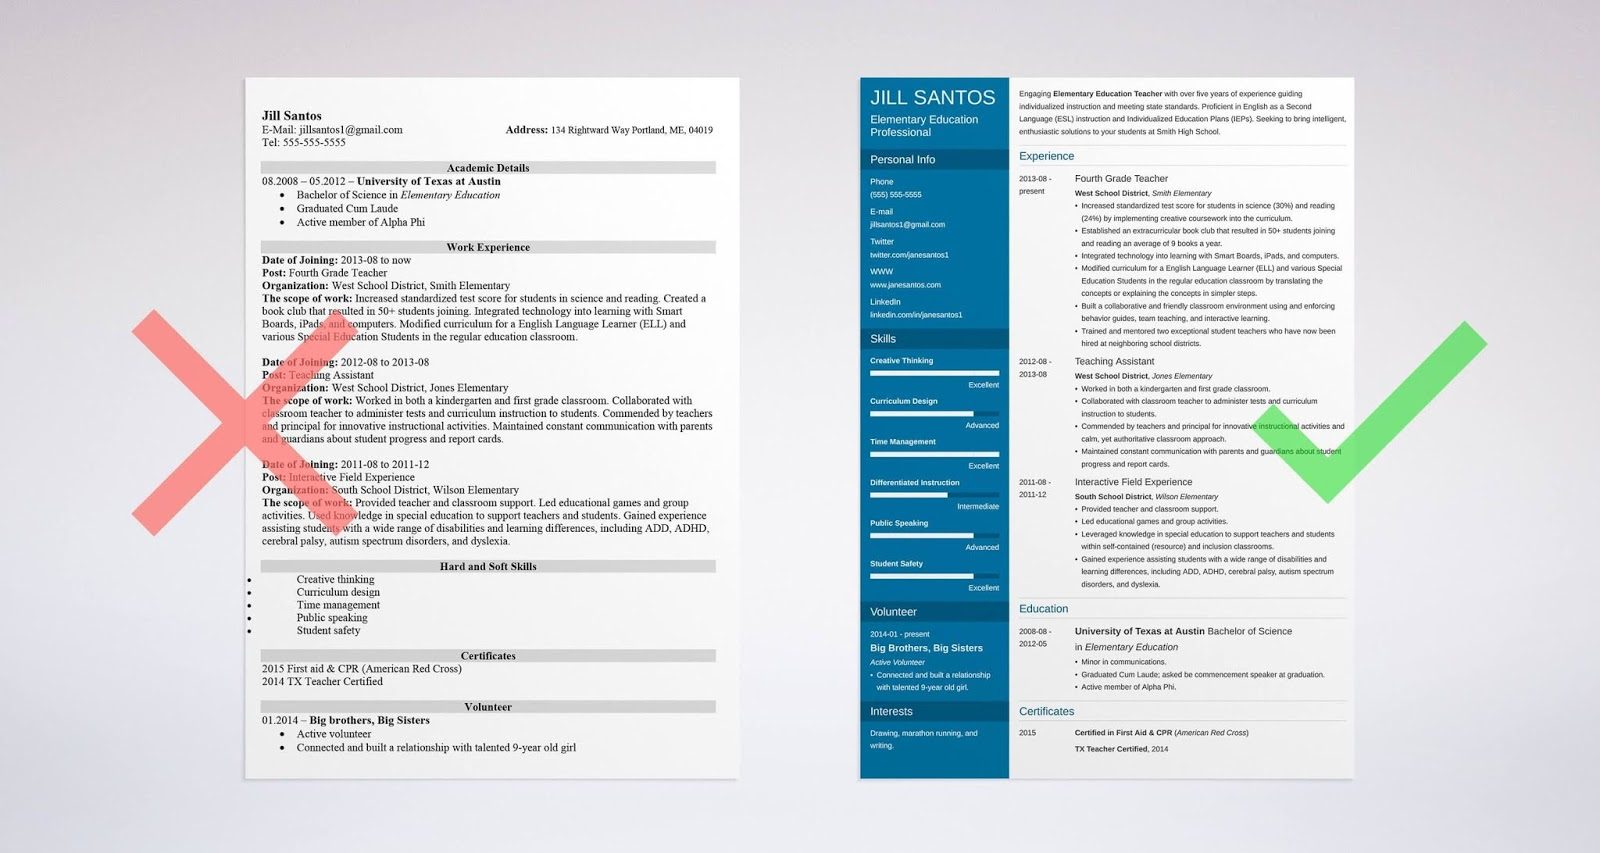 Teacher resume templates, teacher resume templates free, teacher resume templates word, teacher resume templates 2020, teacher resume templates google docs, teacher resume templates free download, teacher resume templates 2019, teacher resume templates microsoft word 2007, teacher resume templates, teacher resume templates 2018,